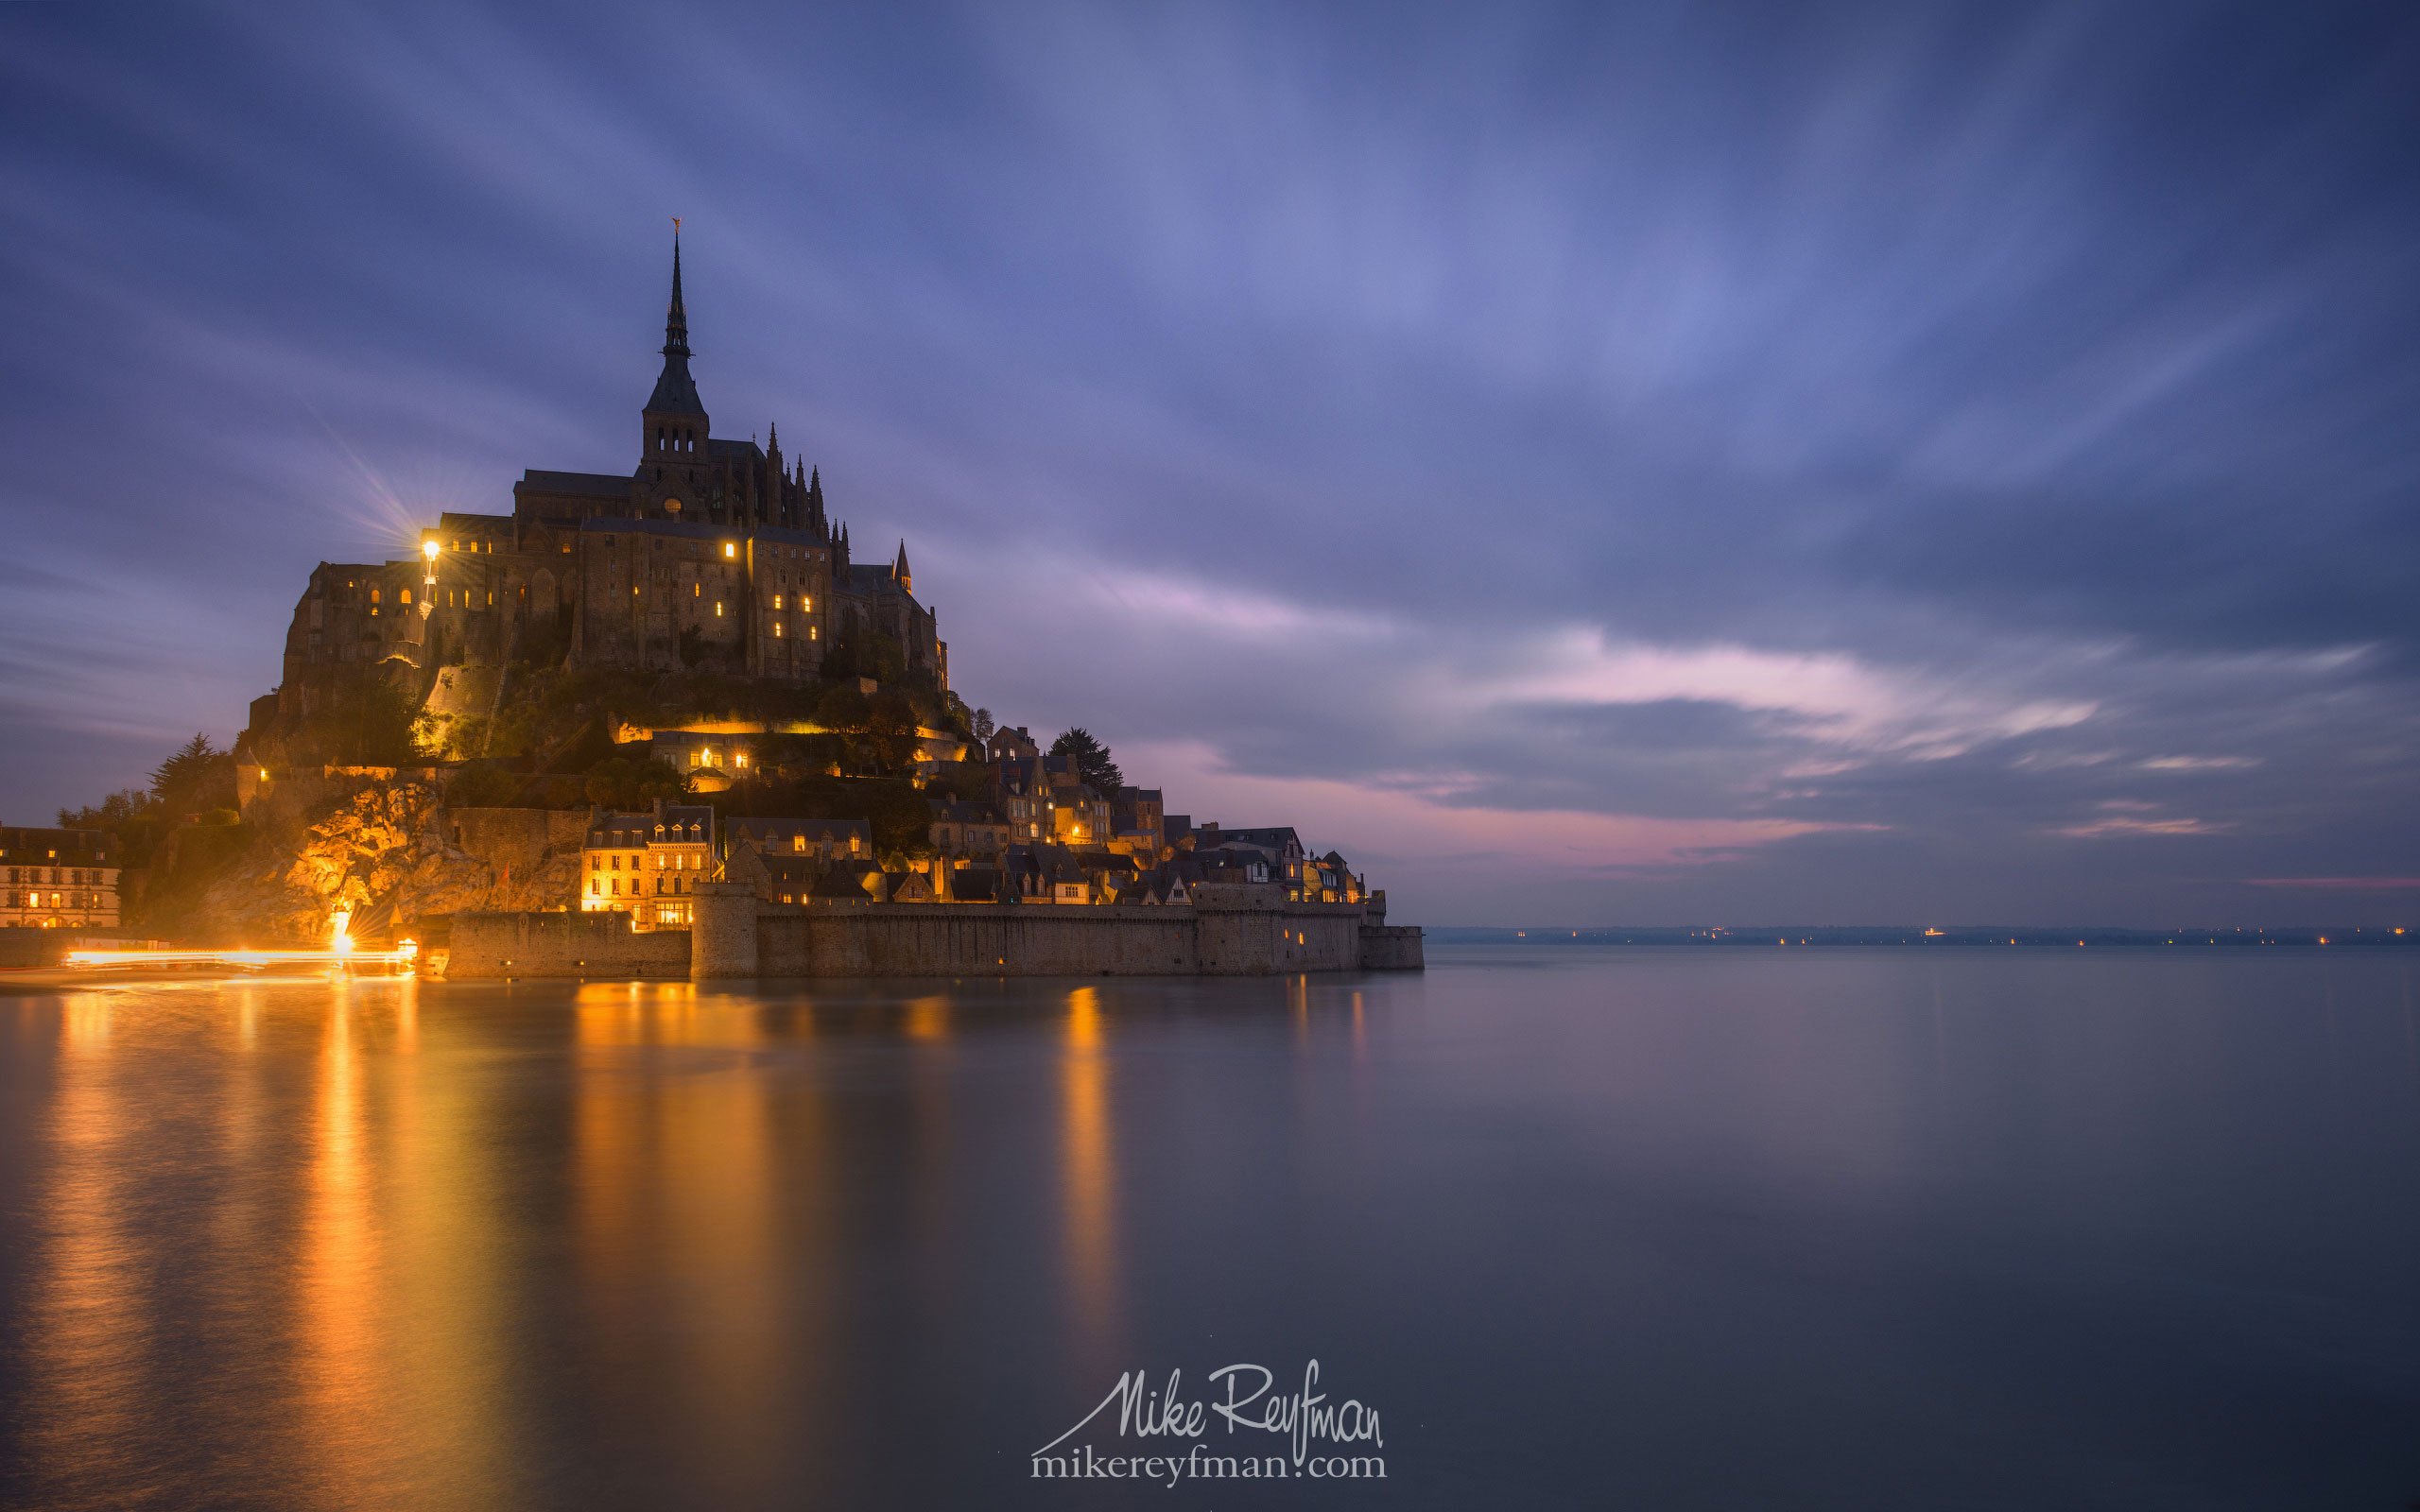 Le Mont-Saint-Michel Island and Benedictine Abbey. Normandy, France SM_MR50A1099 - Le Mont Saint Michel Island and Benedictine Abbey, Normandy, France - Mike Reyfman Photography